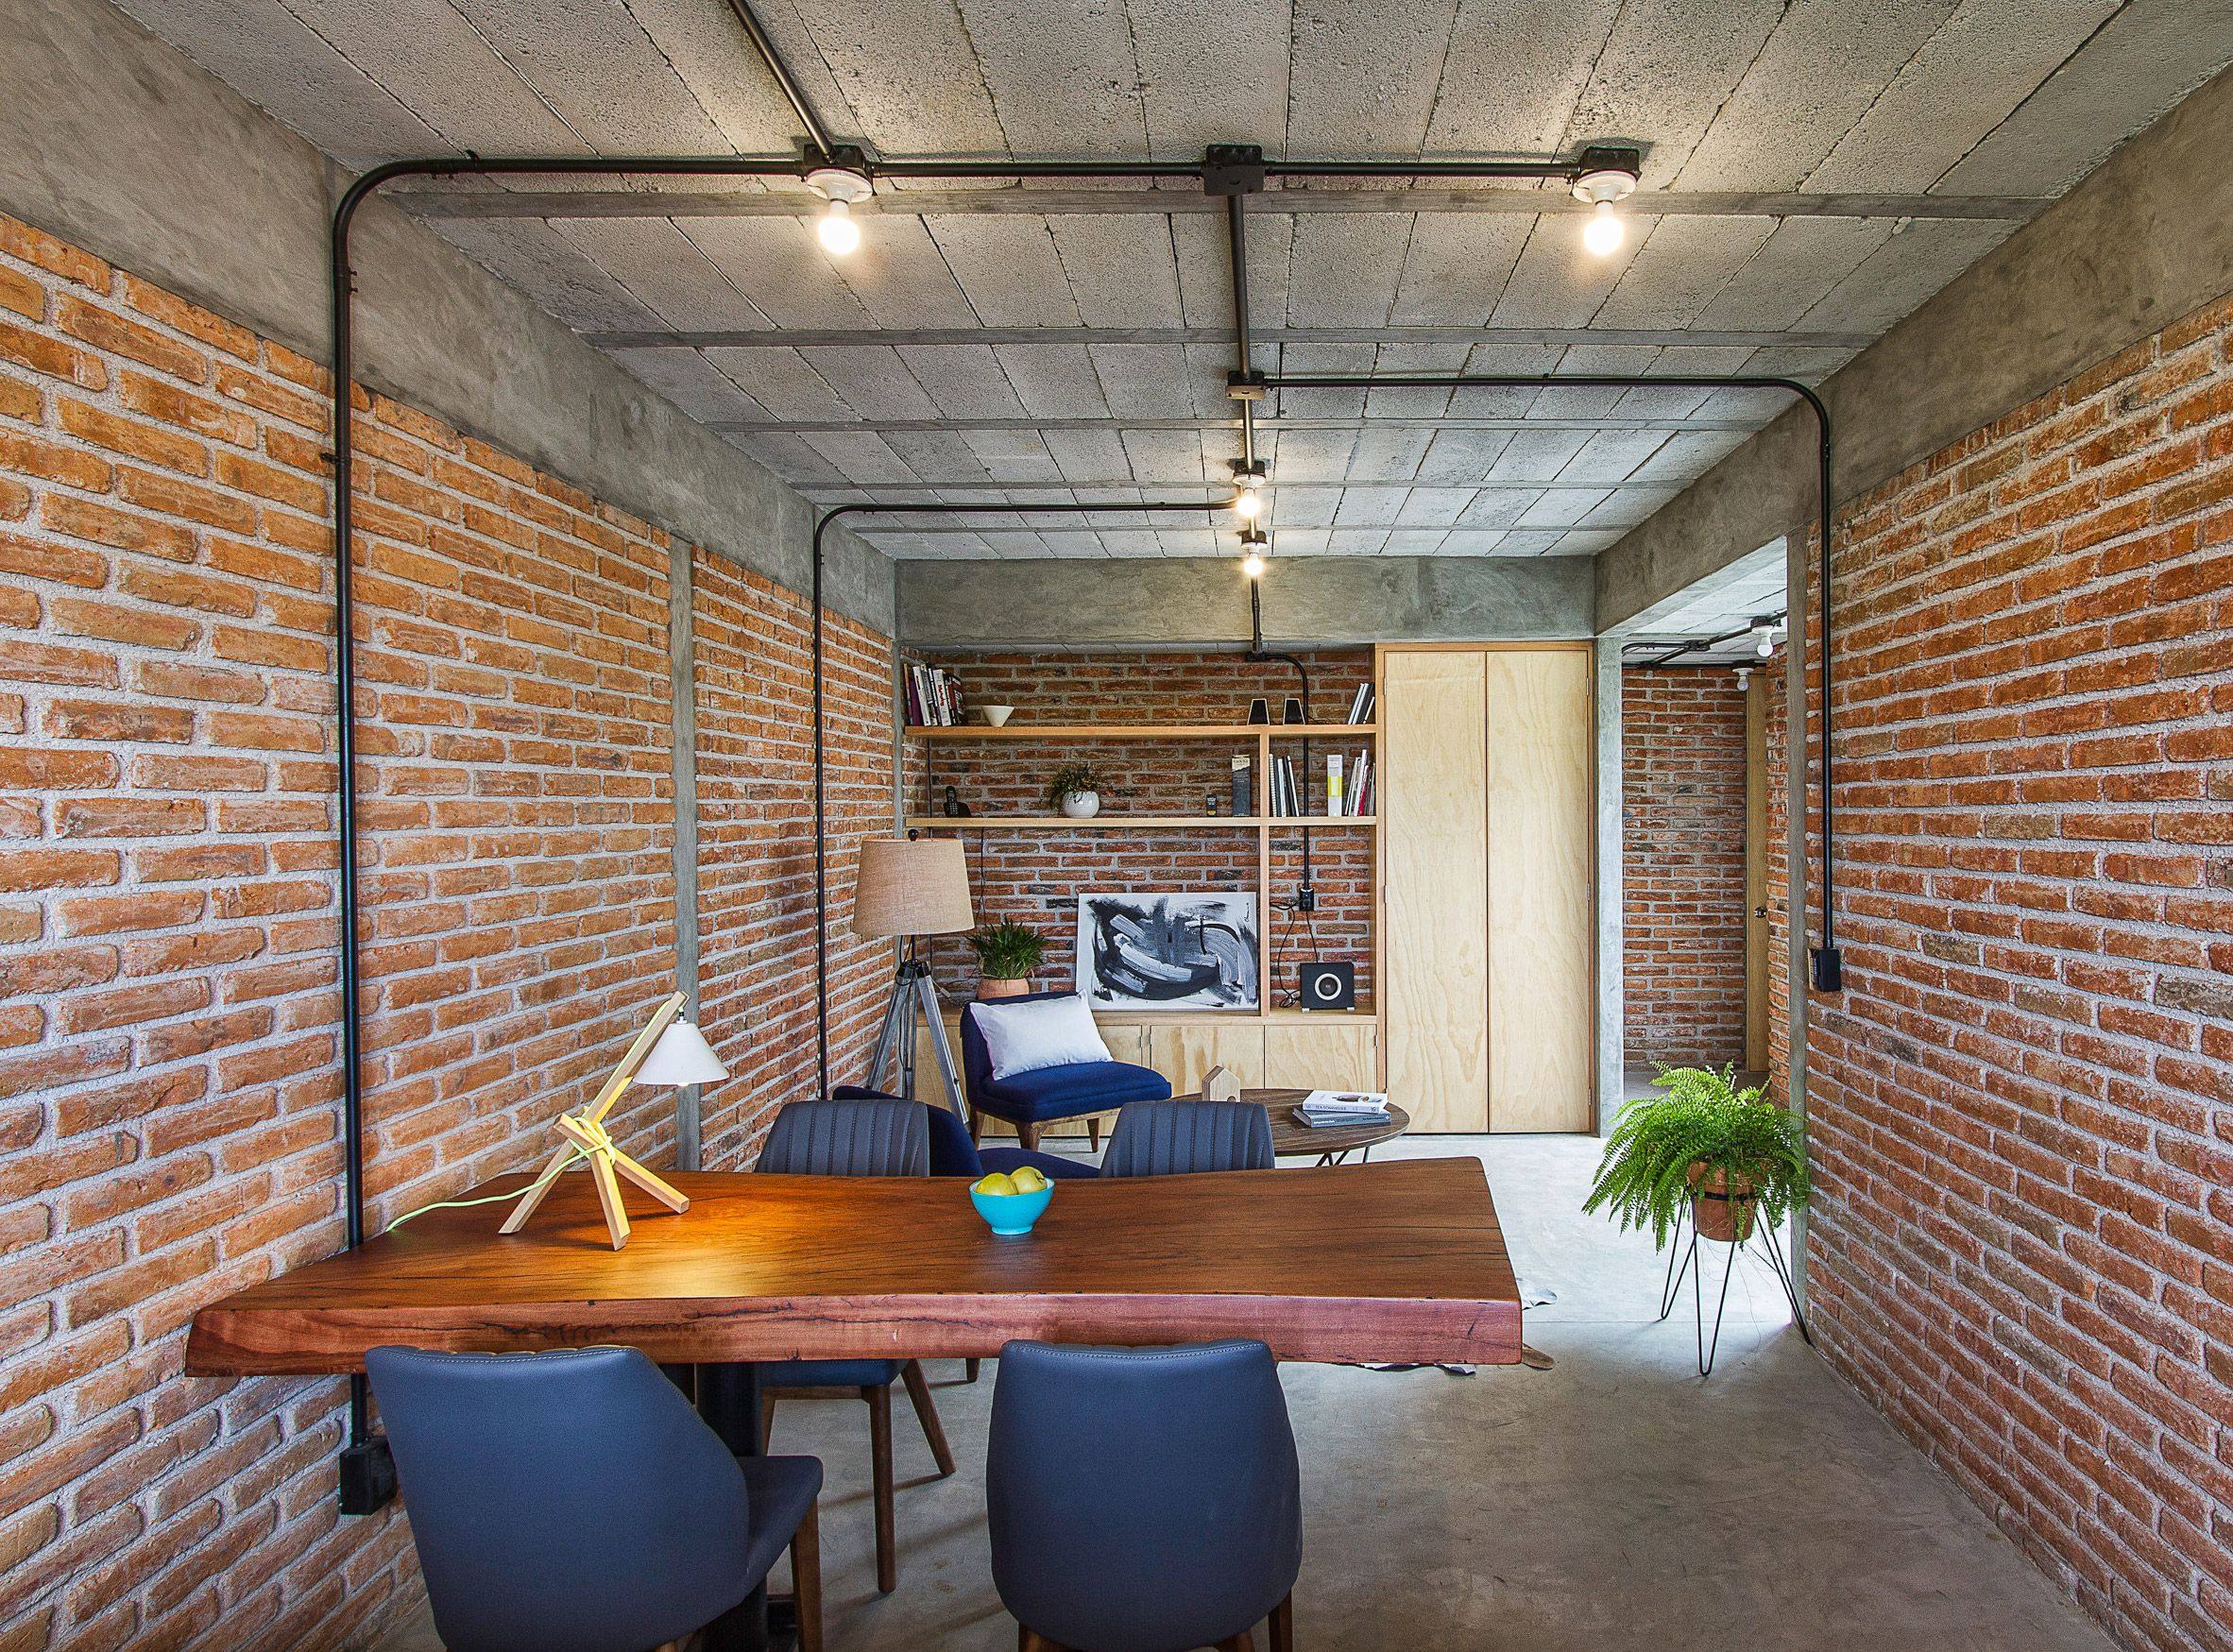 Intersticial arquitectura turns s industrial building into home